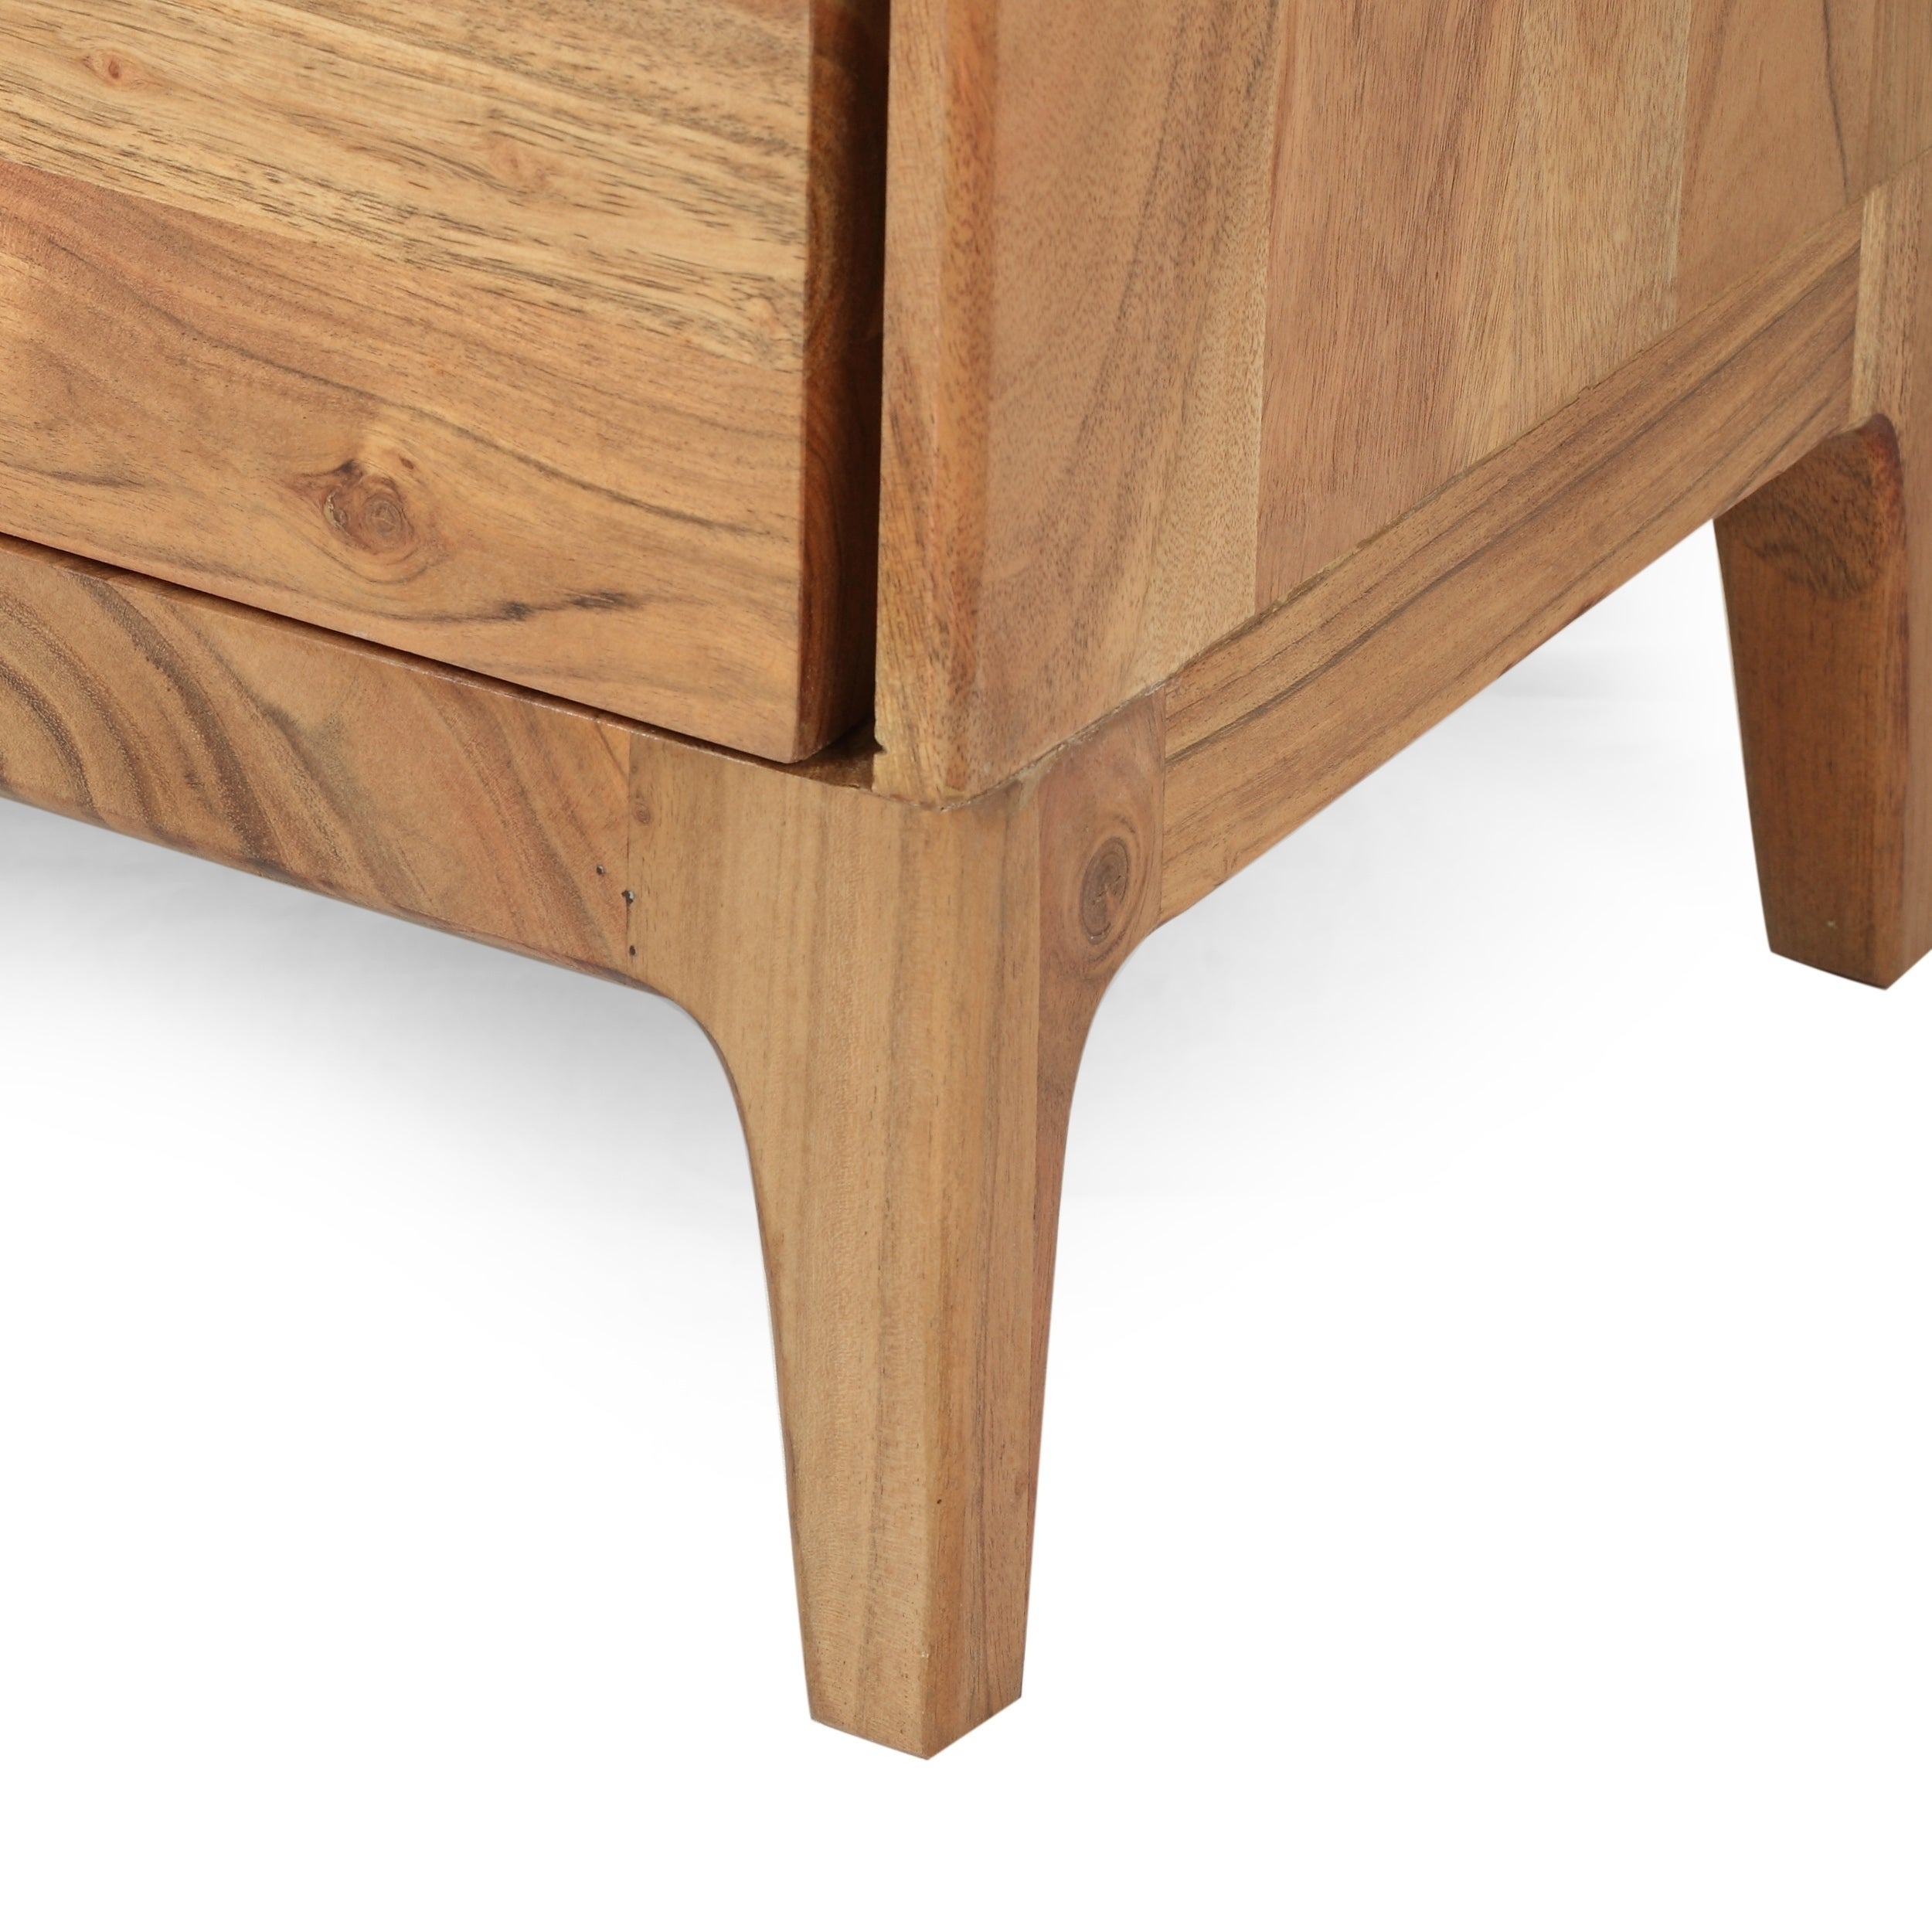 Amwiler Modern Acacia Wood Side Table By Christopher Knight Home On Sale Overstock 28878946